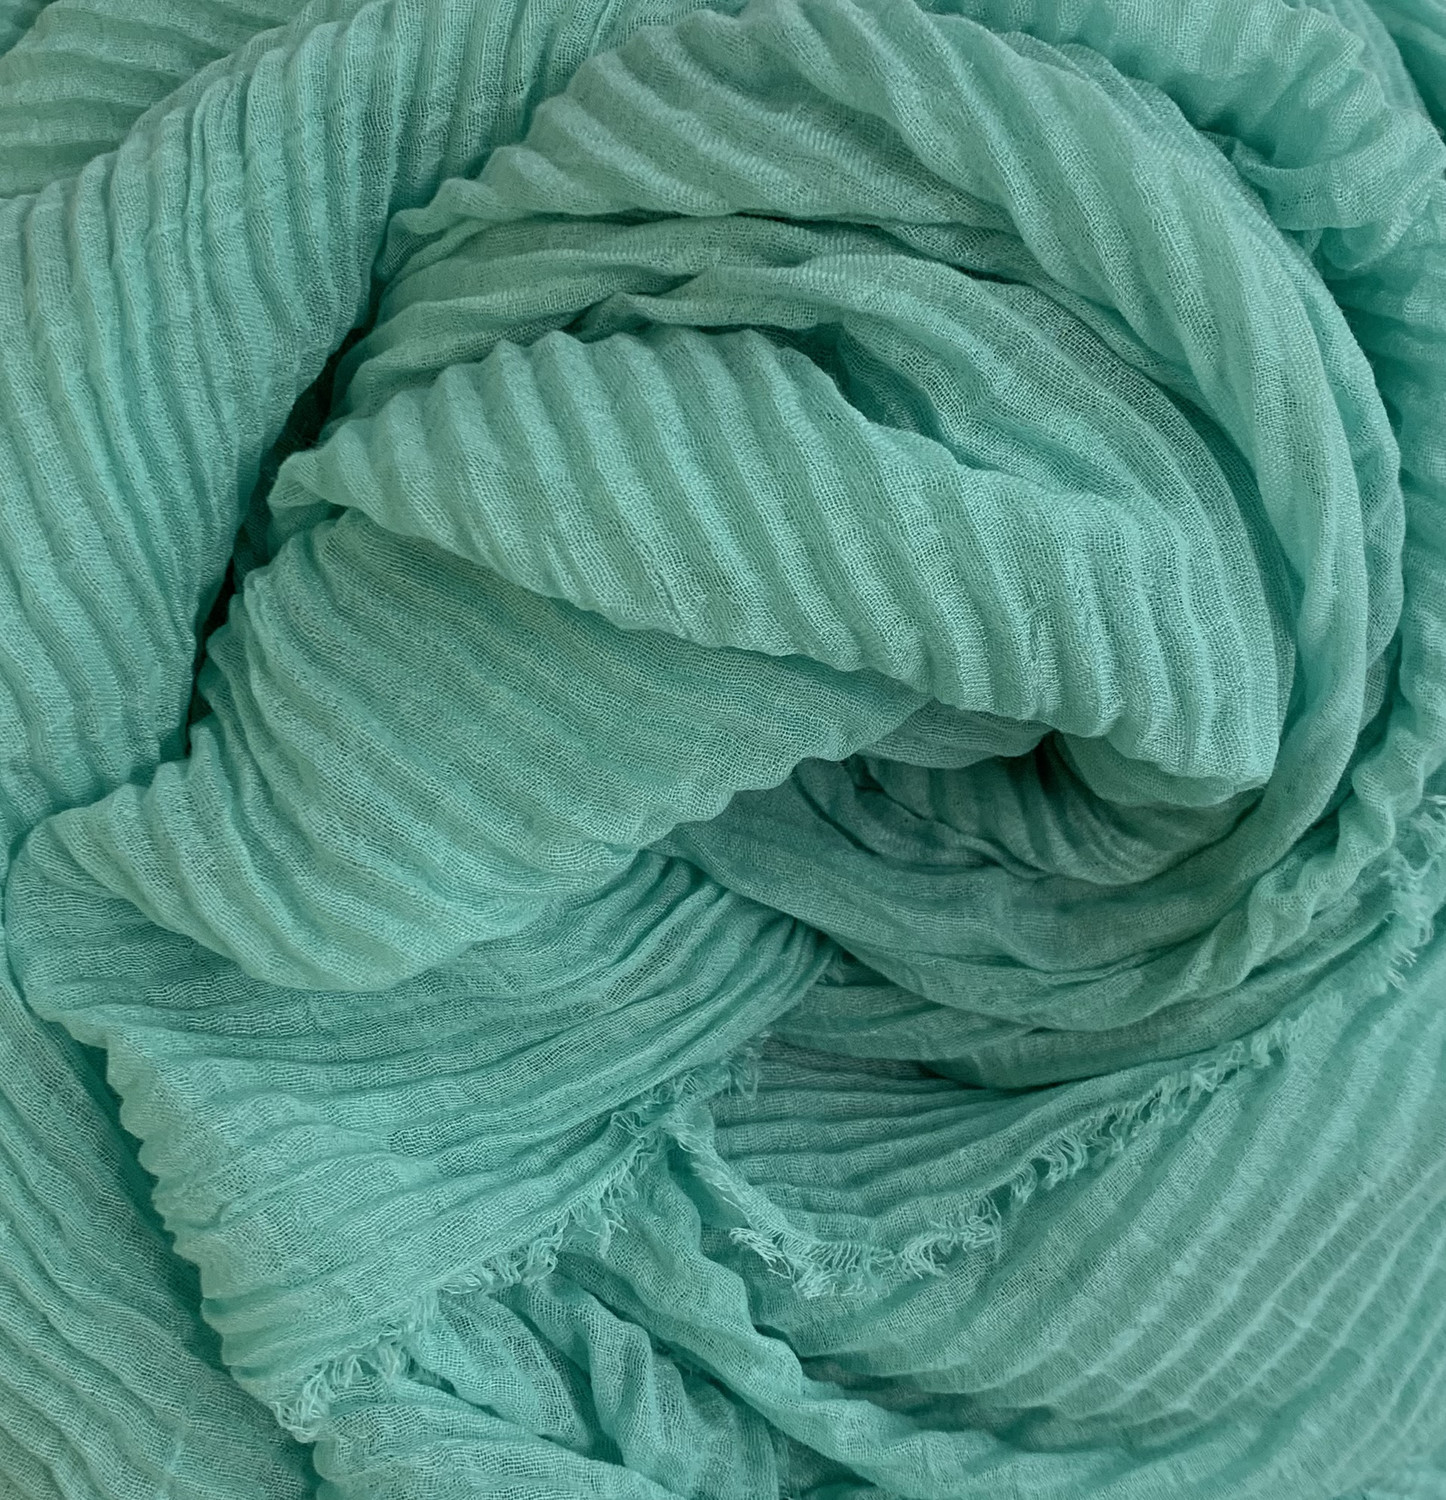 Soft Crinkle Chiffon Teal Green